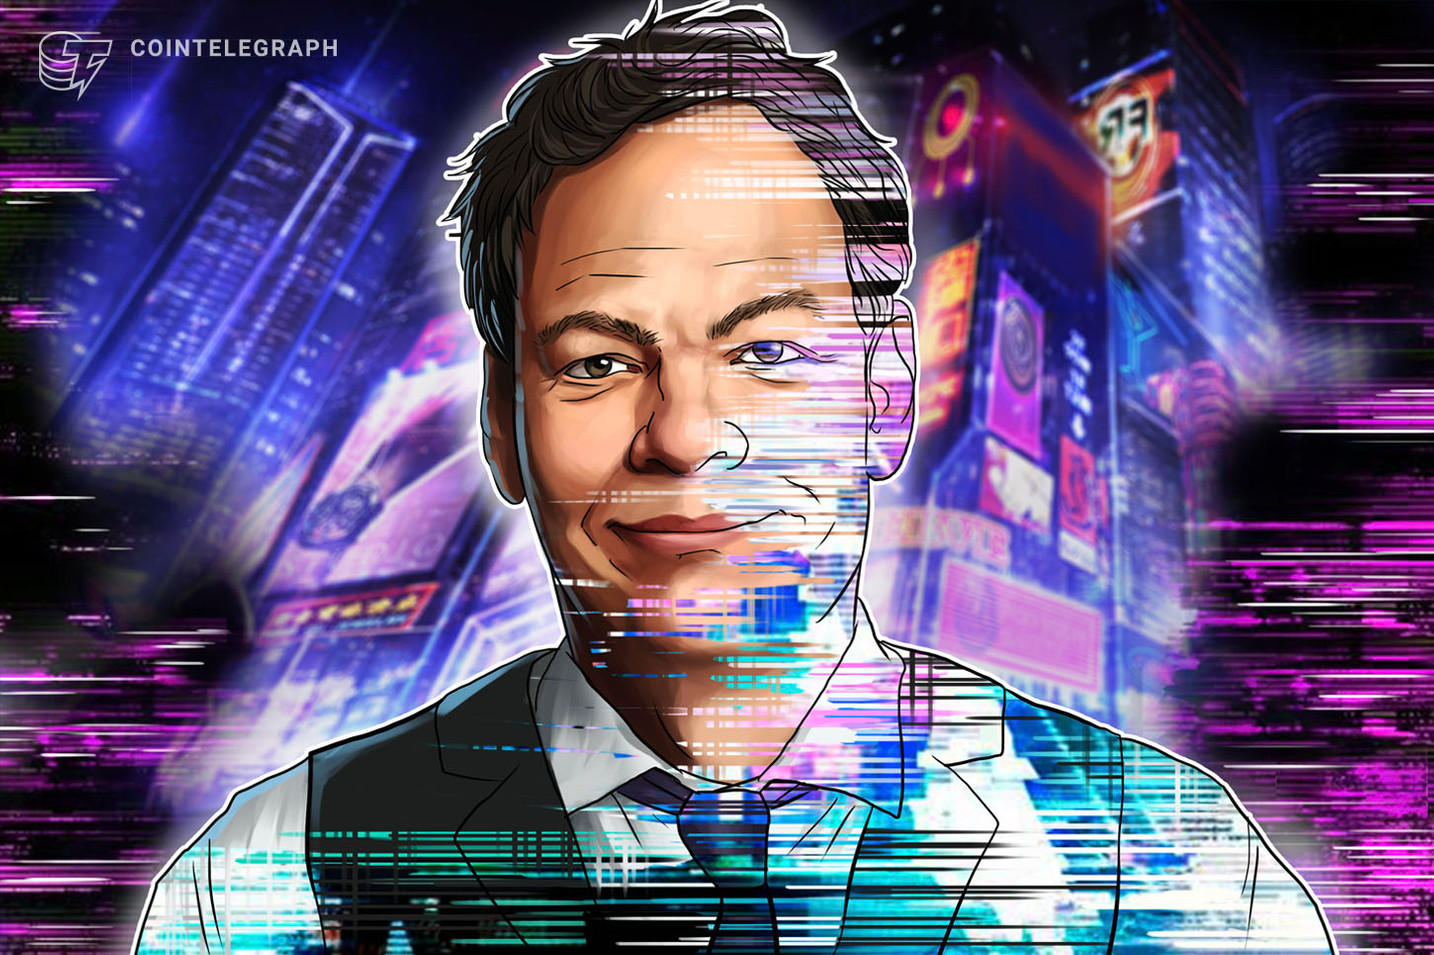 Max Keiser: Altcoin Phenomenon Finished, Value Will Flow Into Bitcoin